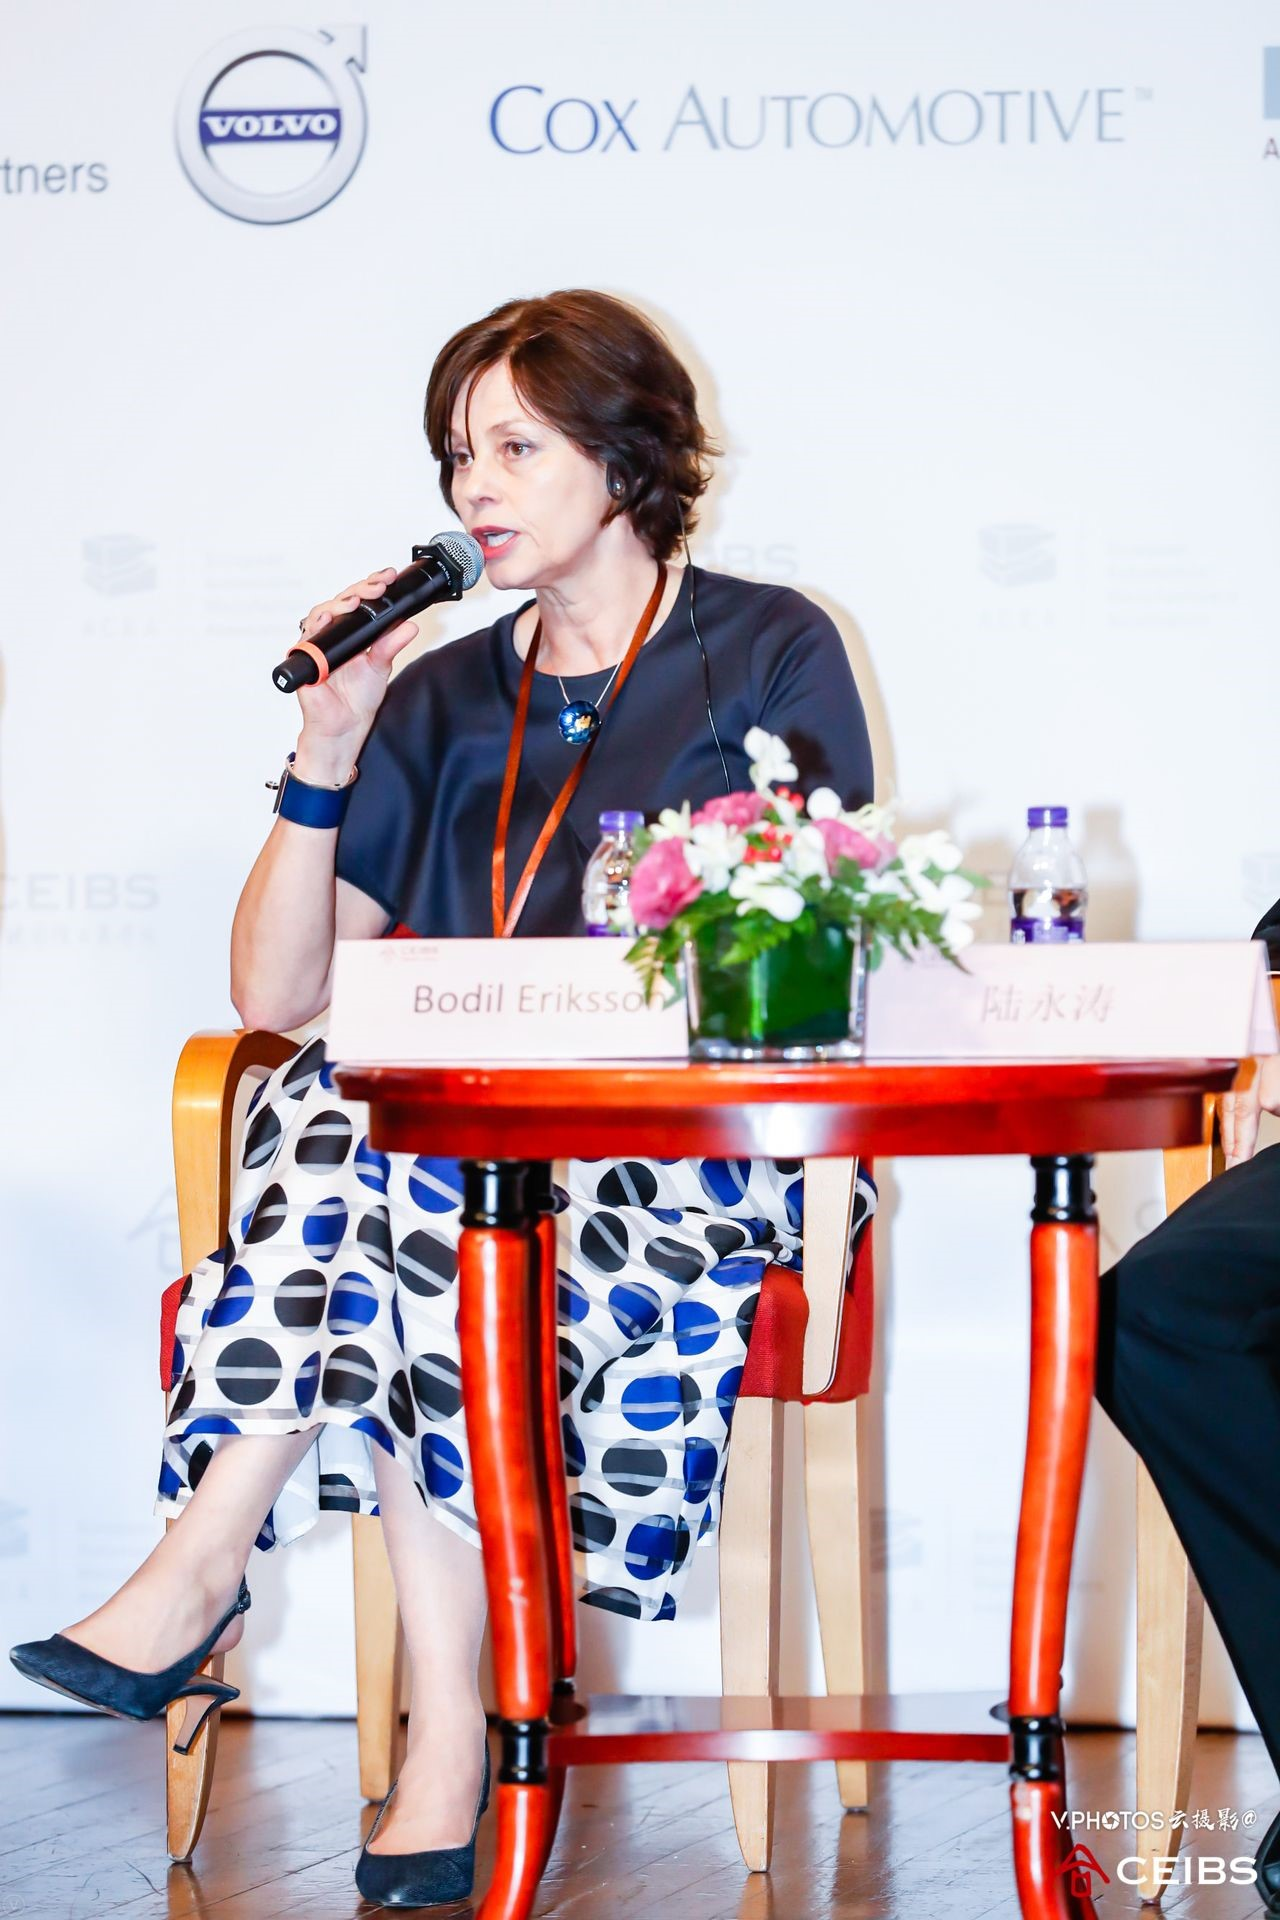 Ms. Bodil Eriksson, Chief Executive Officer, Volvo Cars Mobility at the 15th CEIBS China Automotive Industry Forum